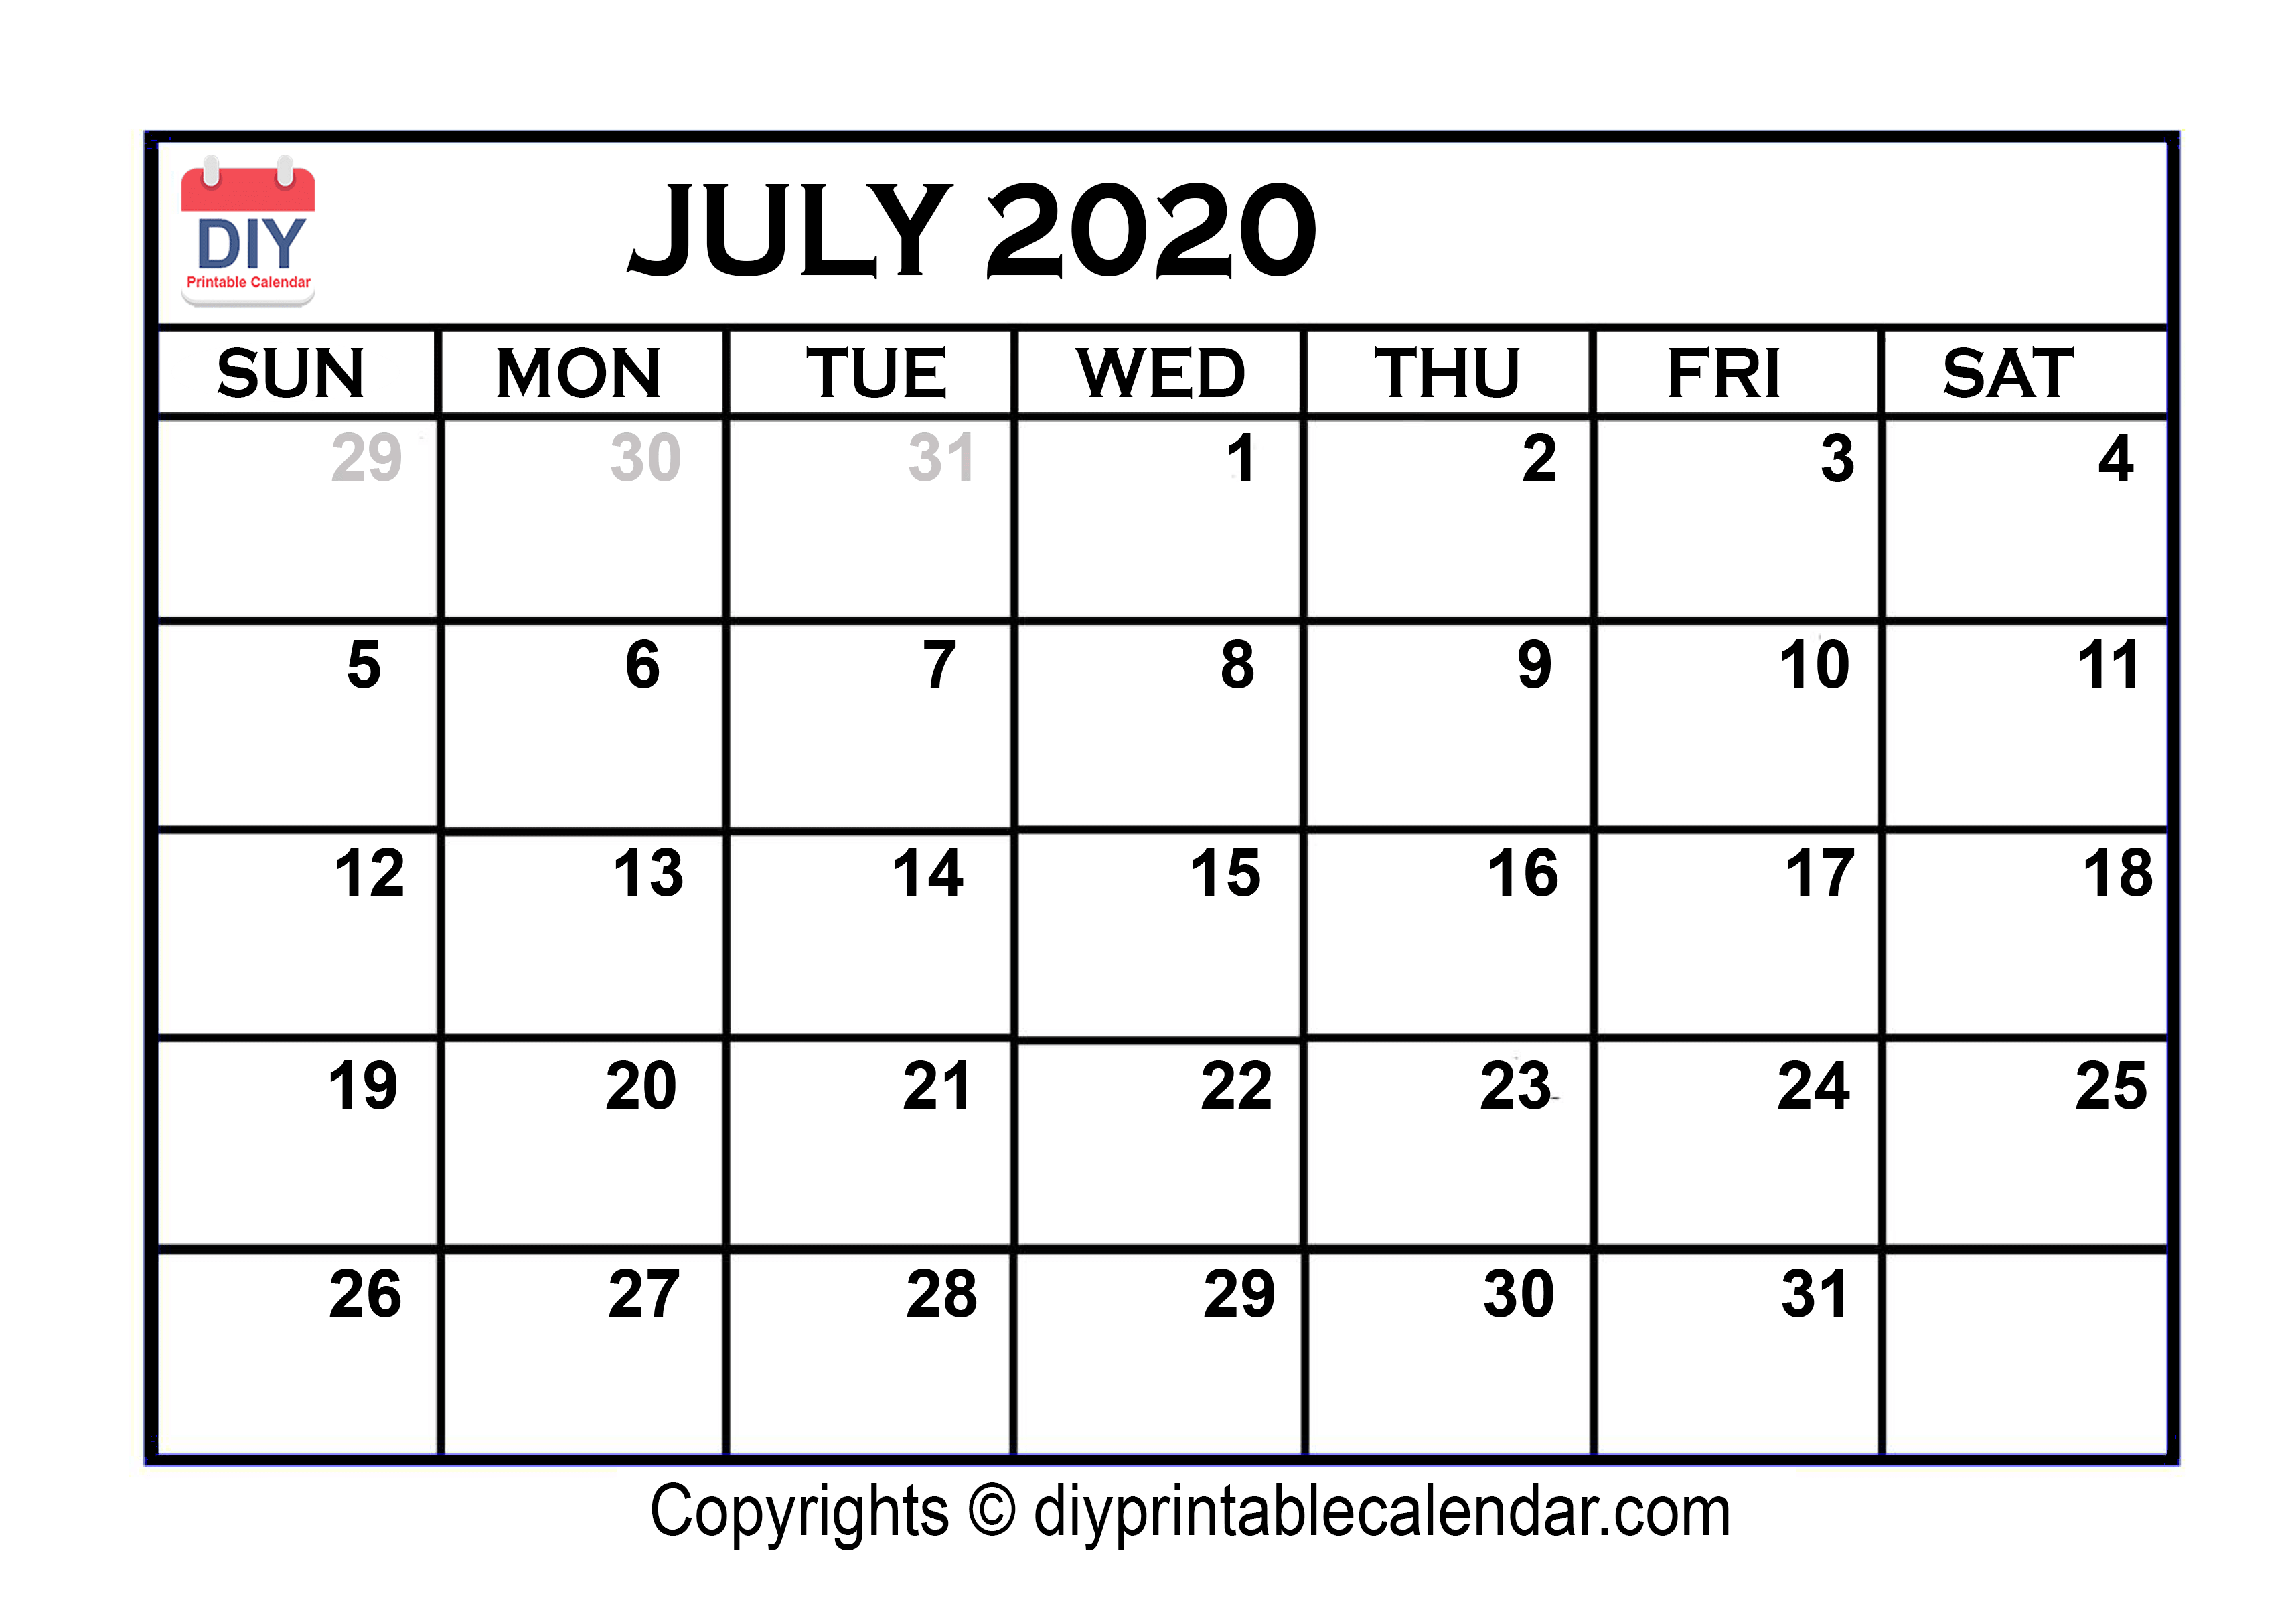 image regarding Printable July Calendar called July 2020 Printable Calendar Template